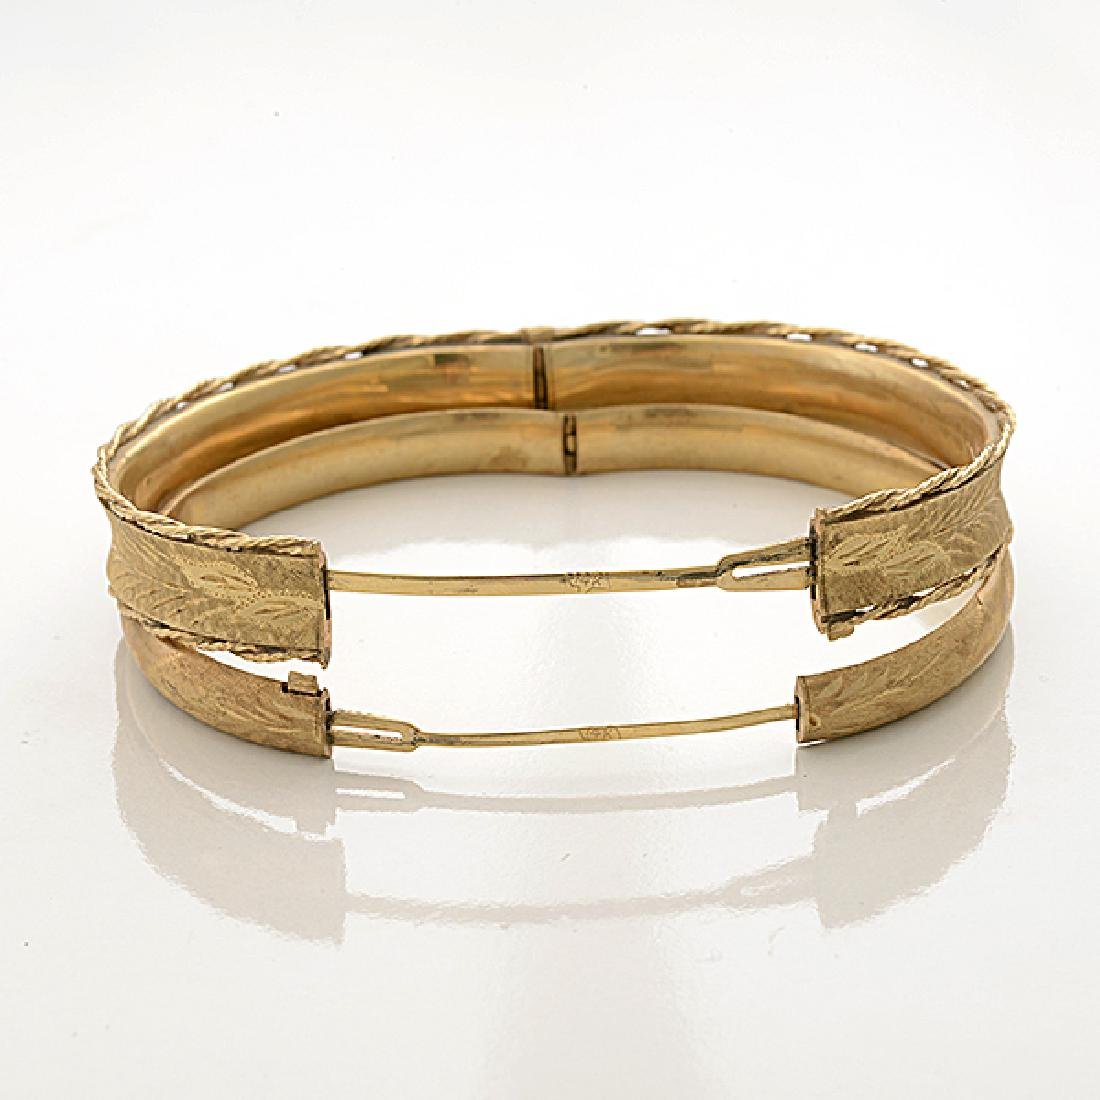 Collection of Two 14k Yellow Gold Bracelets. - 5